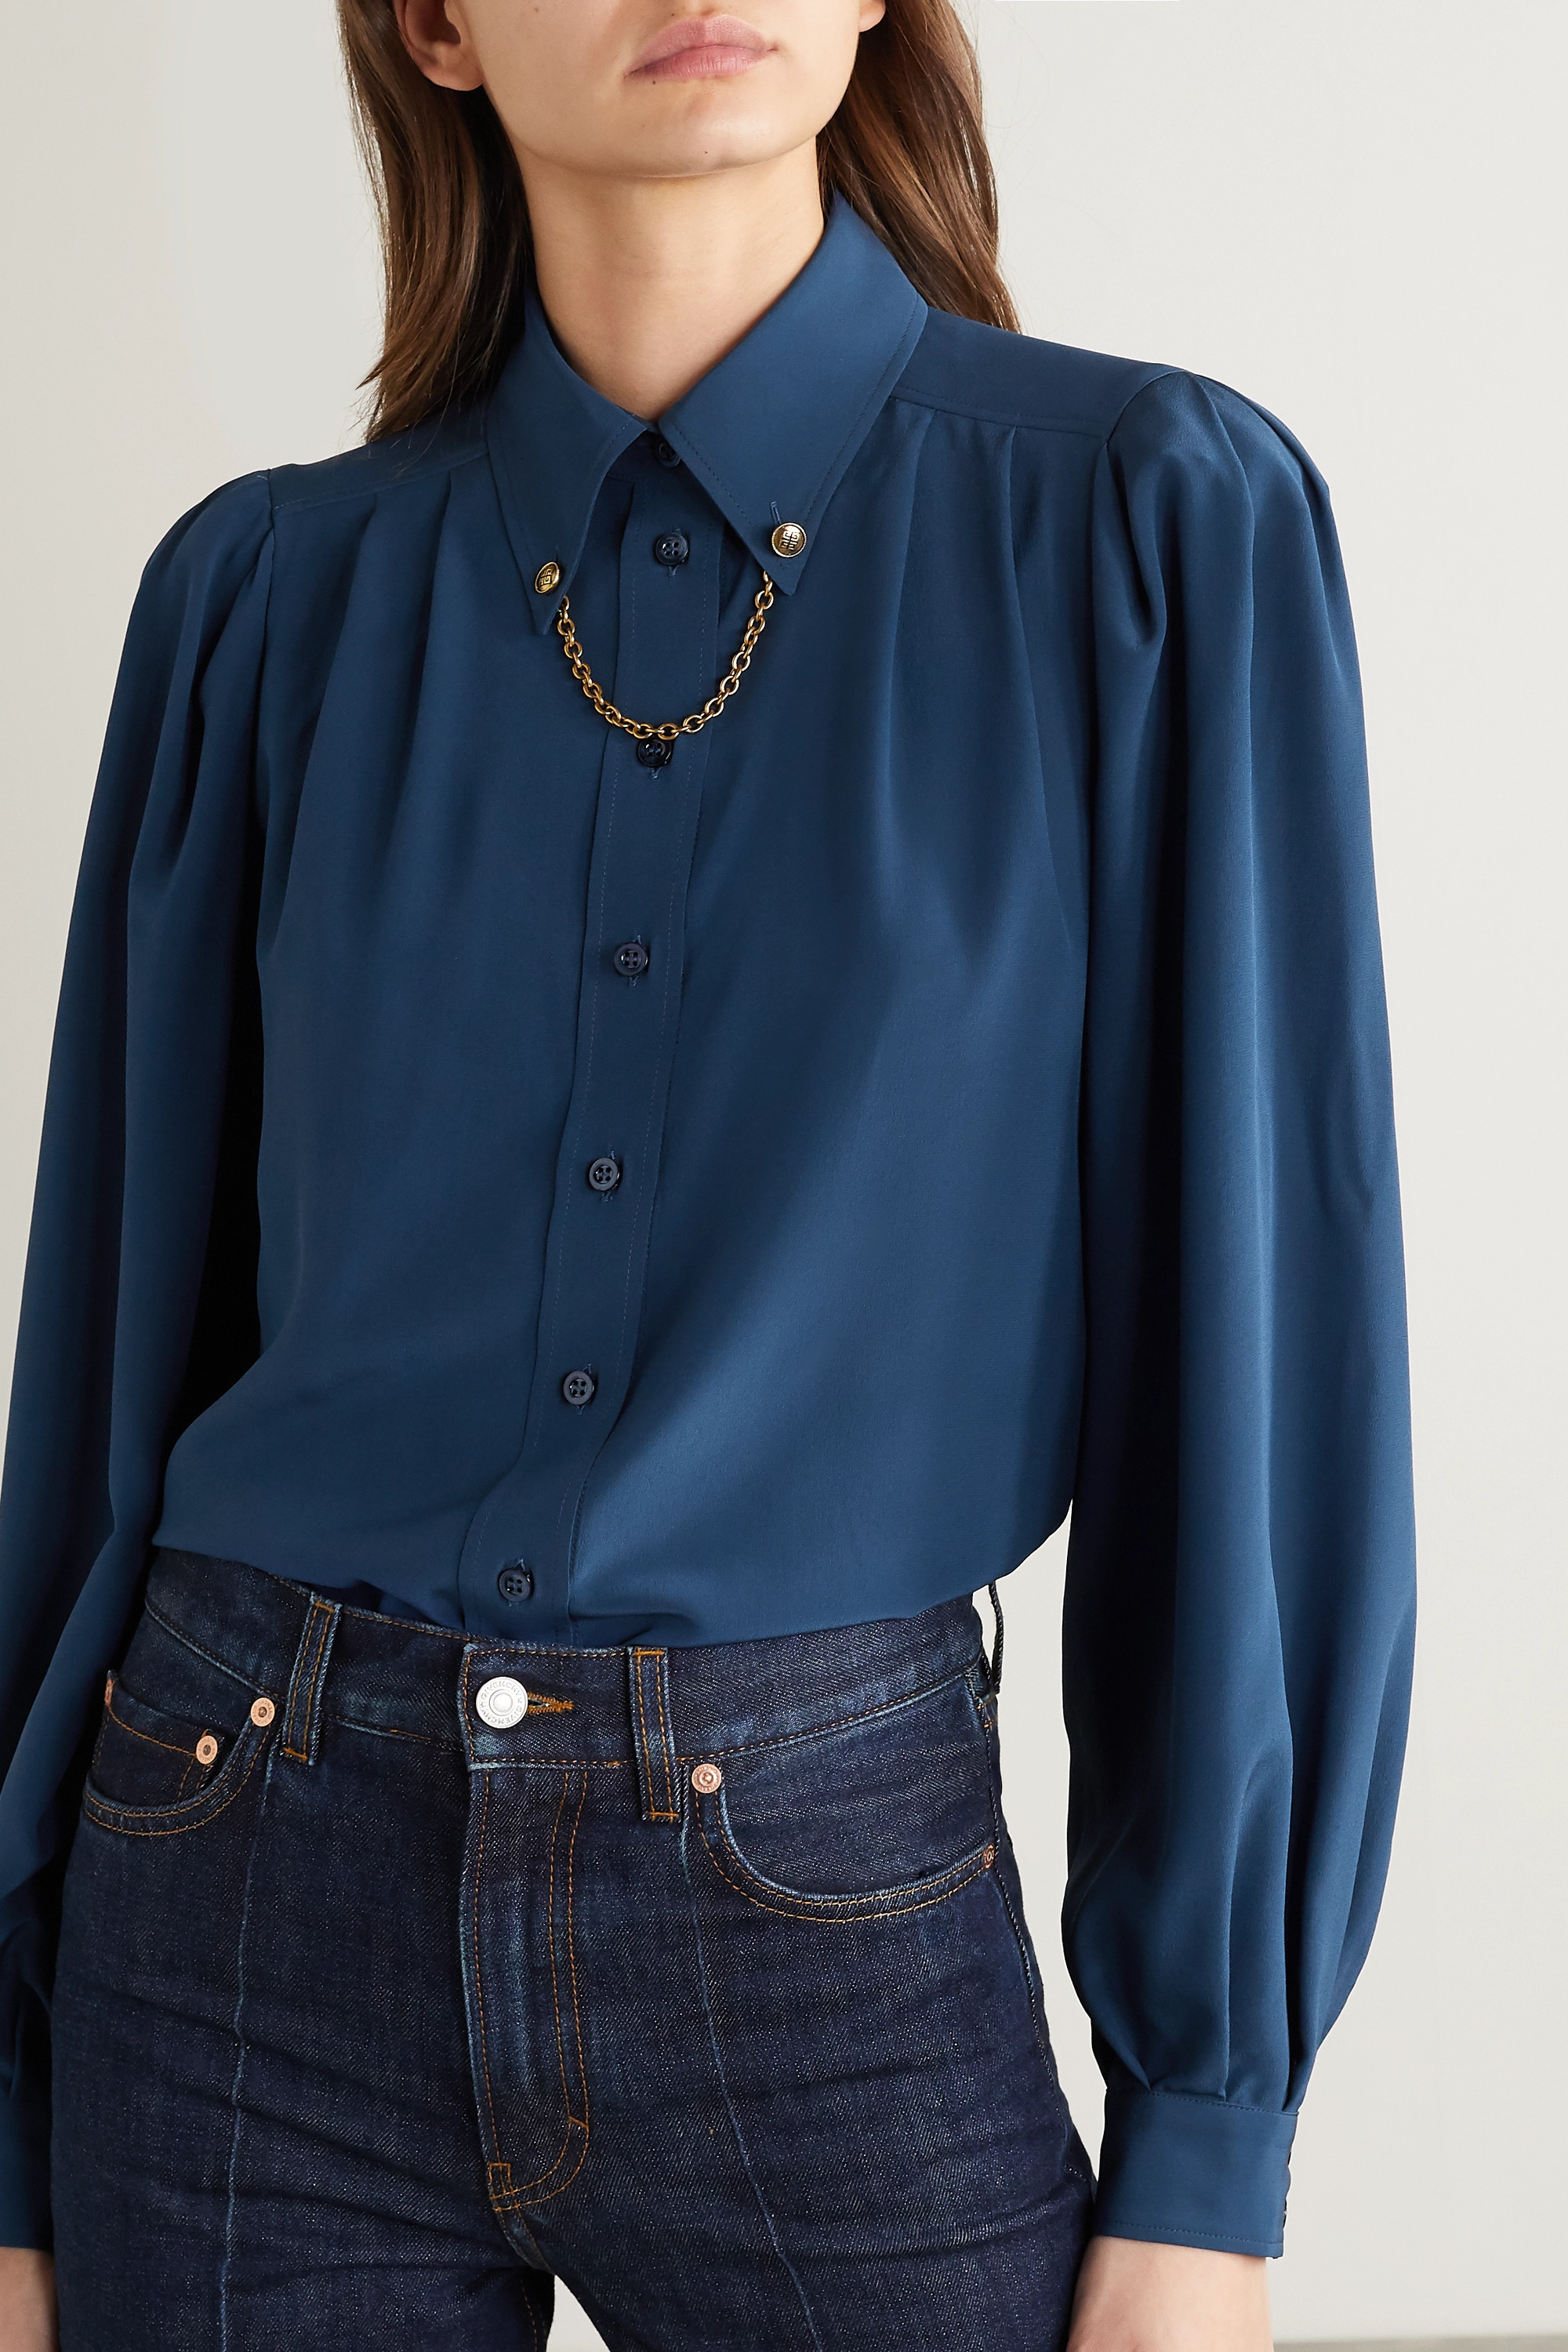 Givenchy Chain-embellished silk crepe de chine shirt